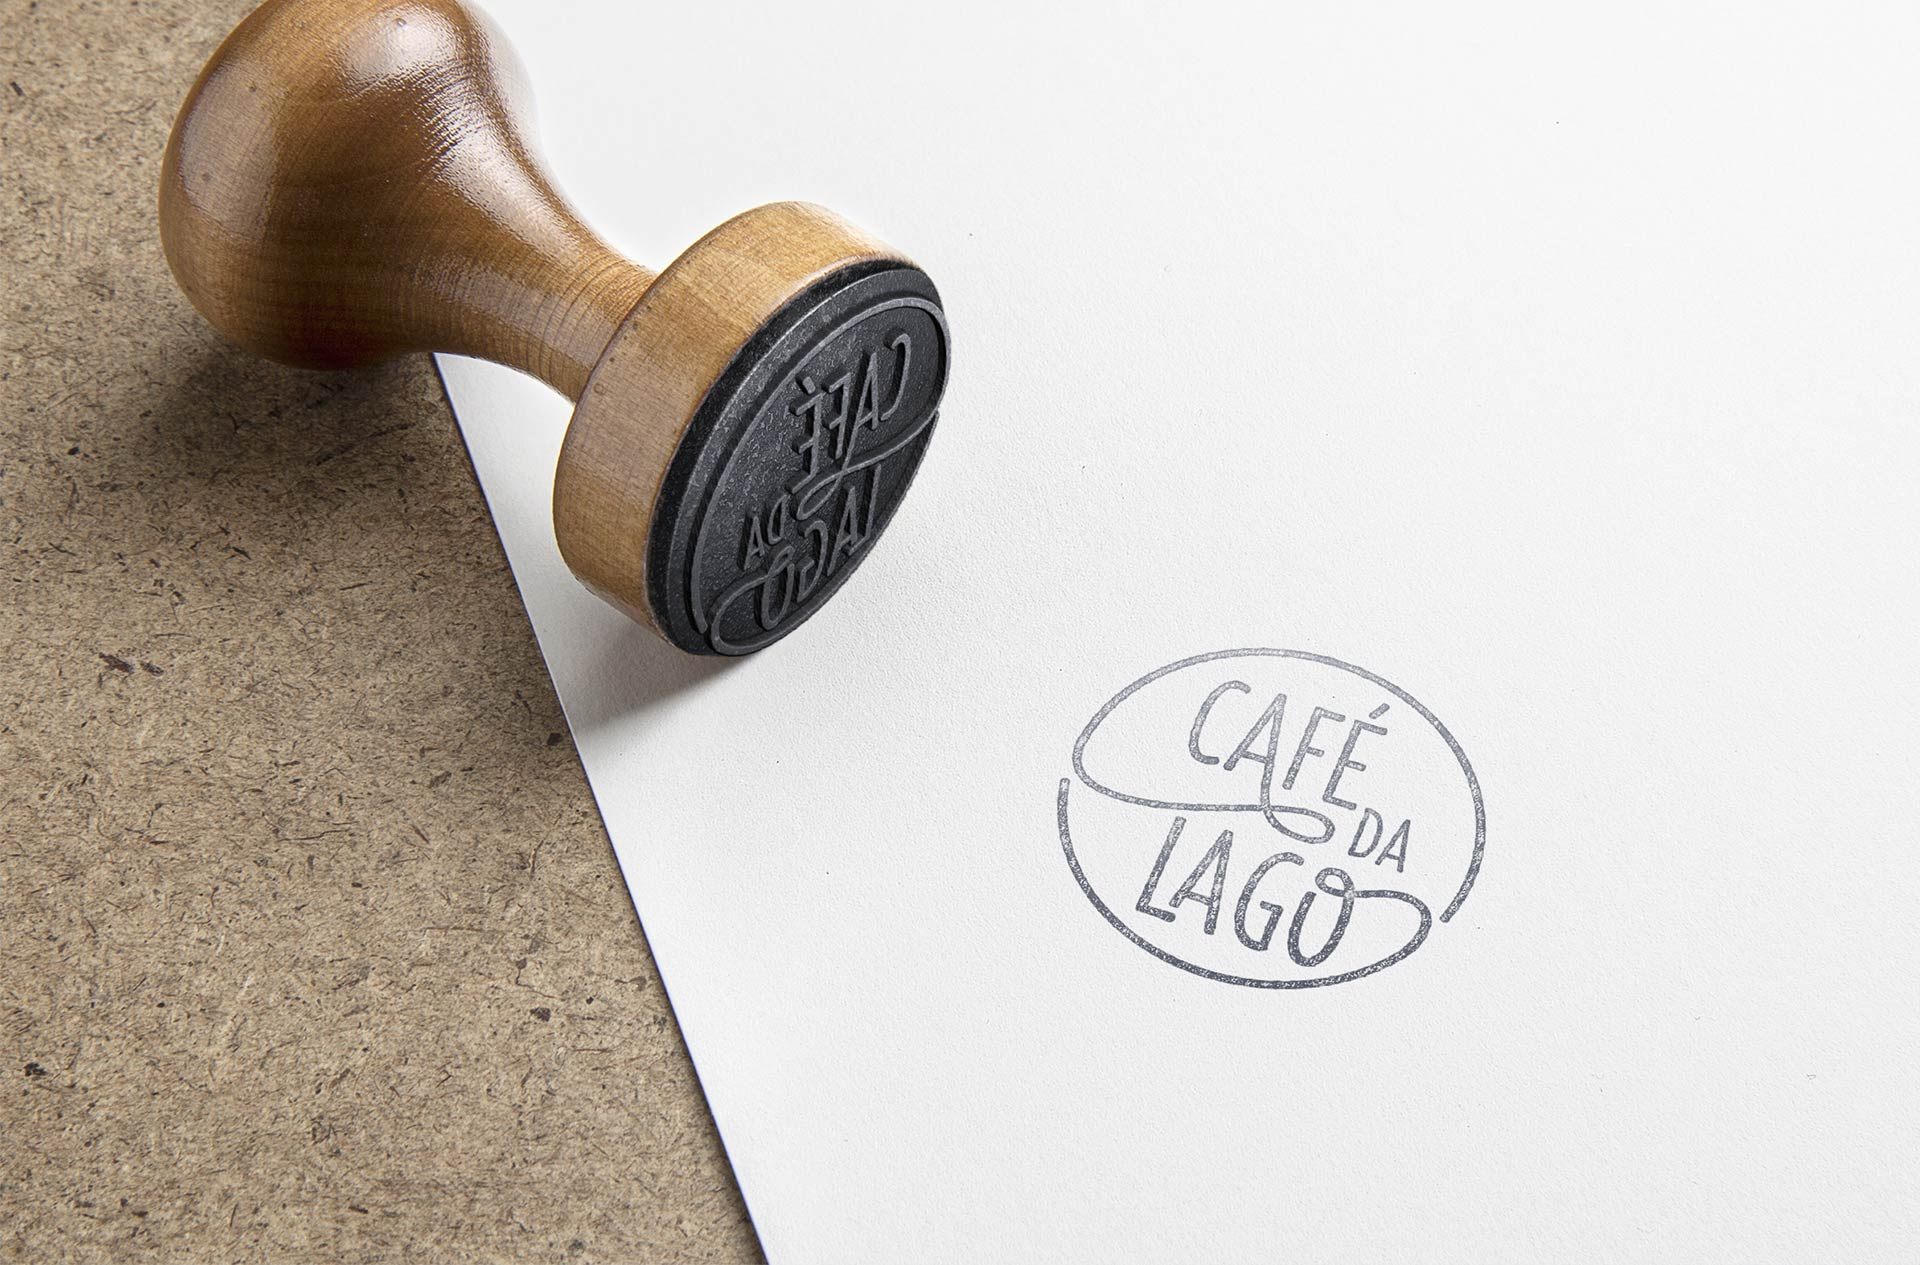 Cafe da Lago Stamp